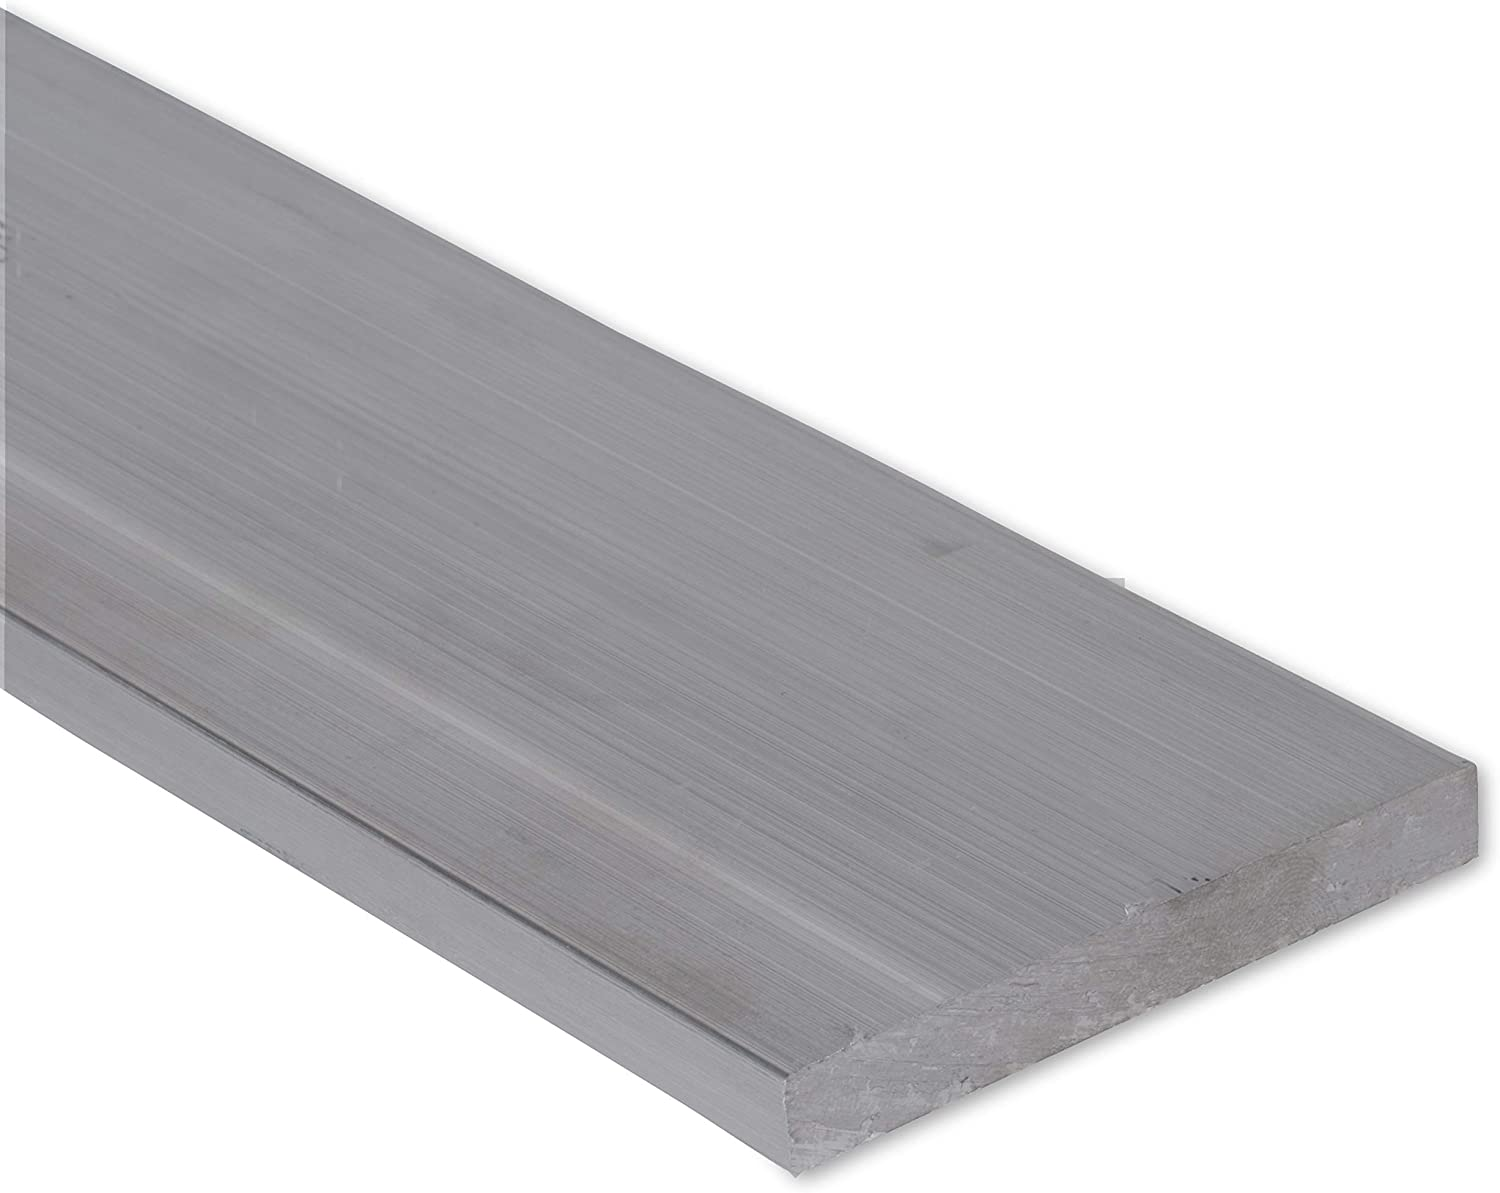 304 Stainless Steel Rectangular Bar Annealed Finish 12 Length 6 Width 3//4 Thickness Annealed Mill ASTM A276 Unpolished Temper